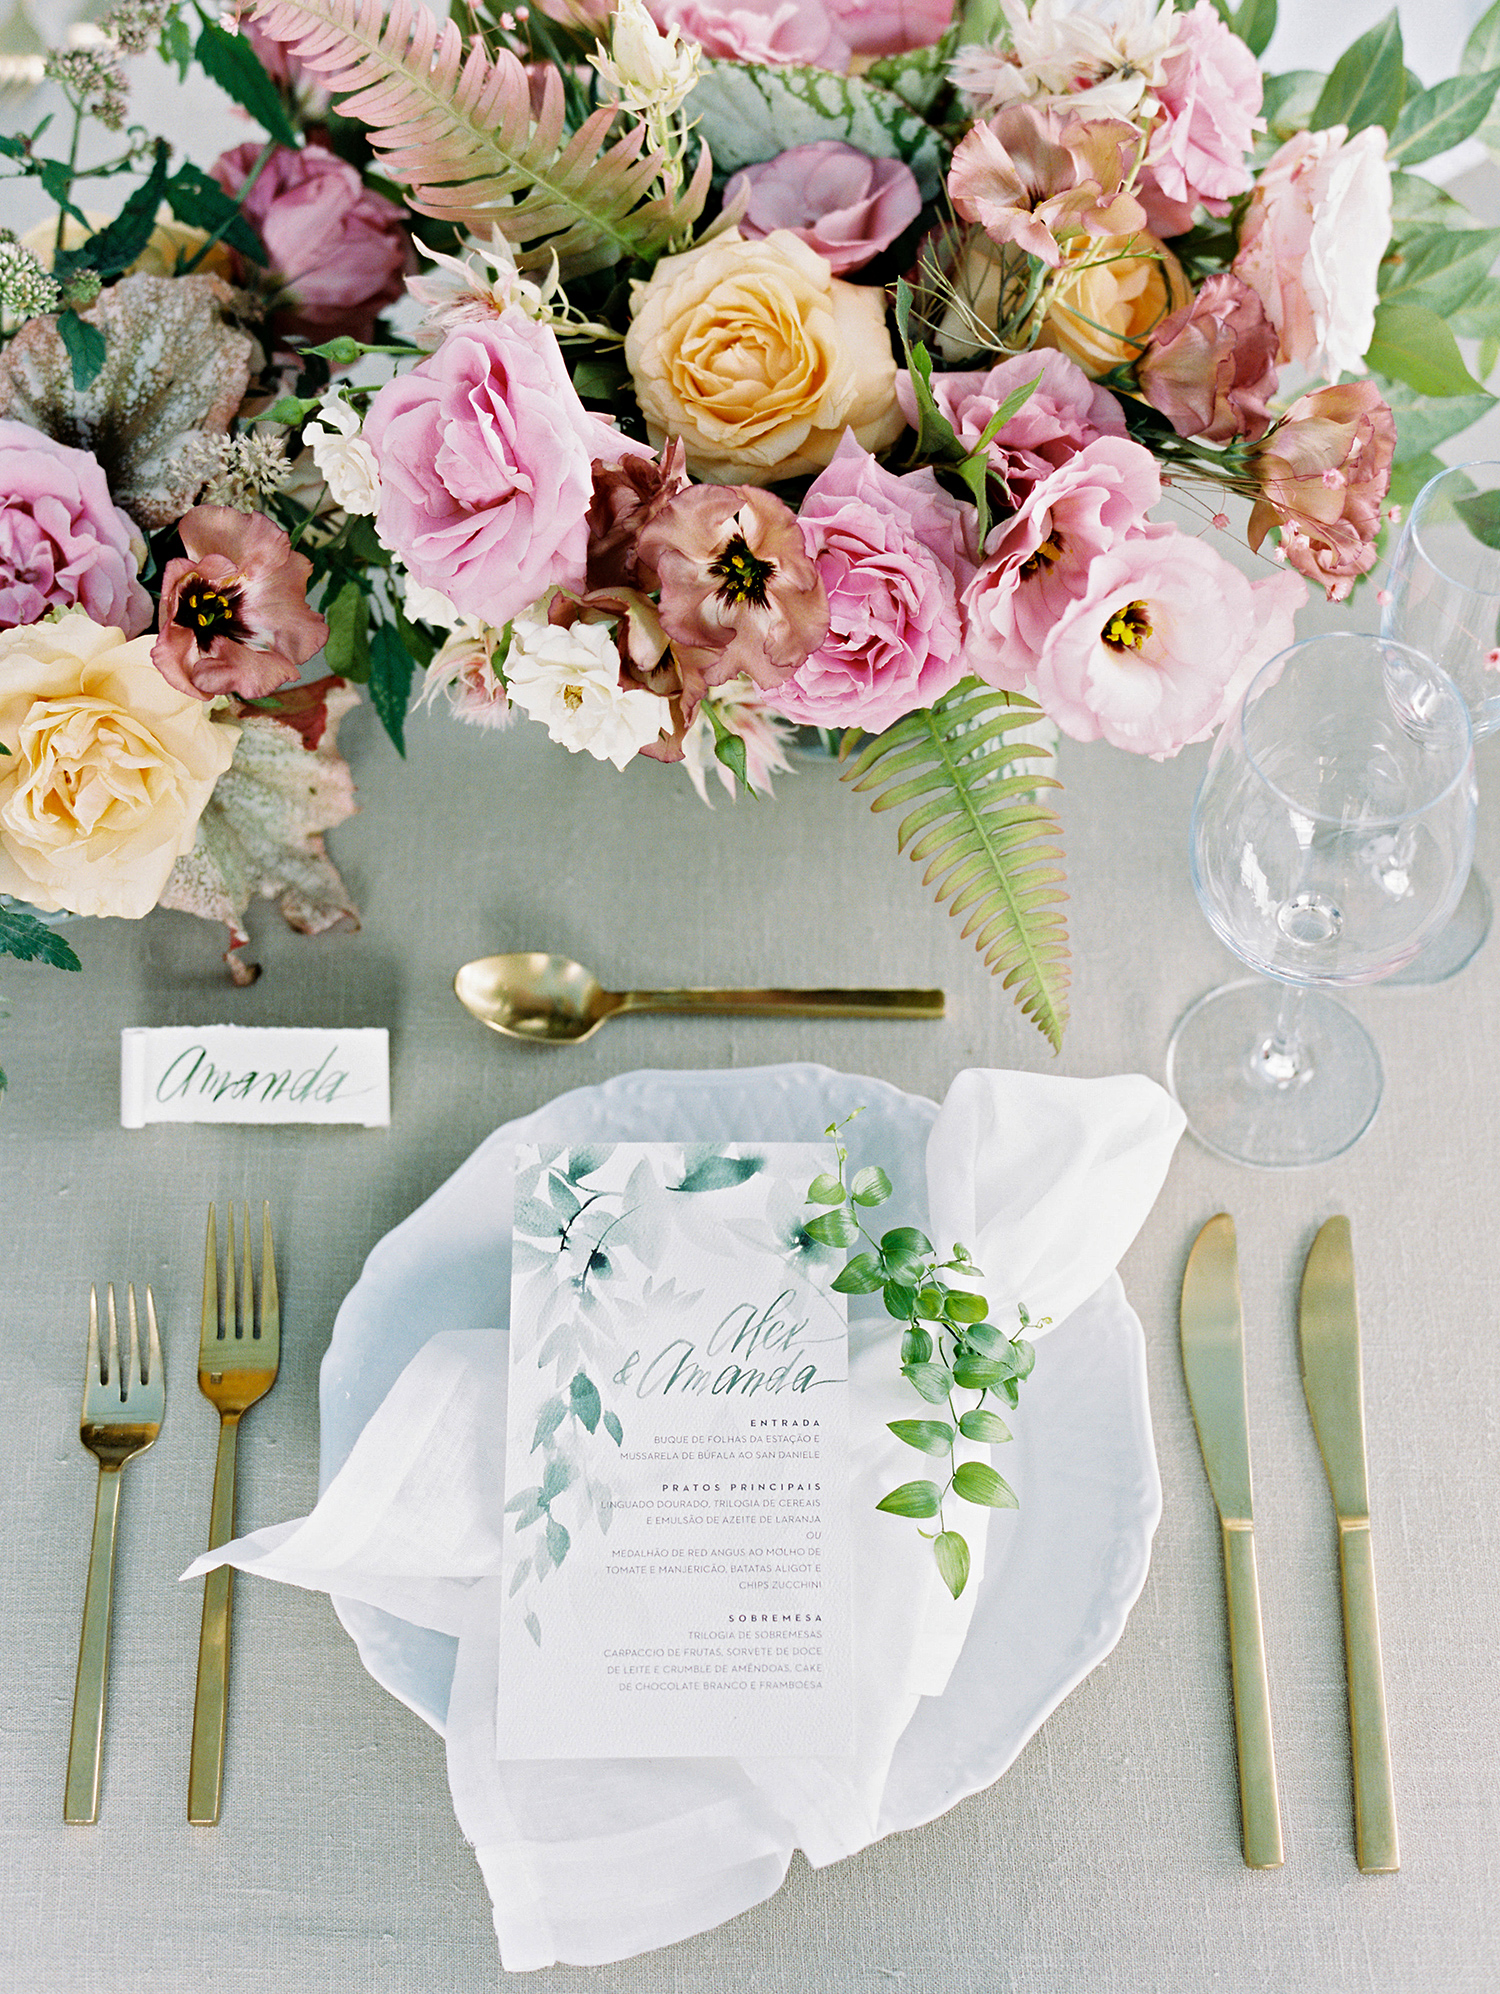 amanda alex wedding placesetting and centerpiece